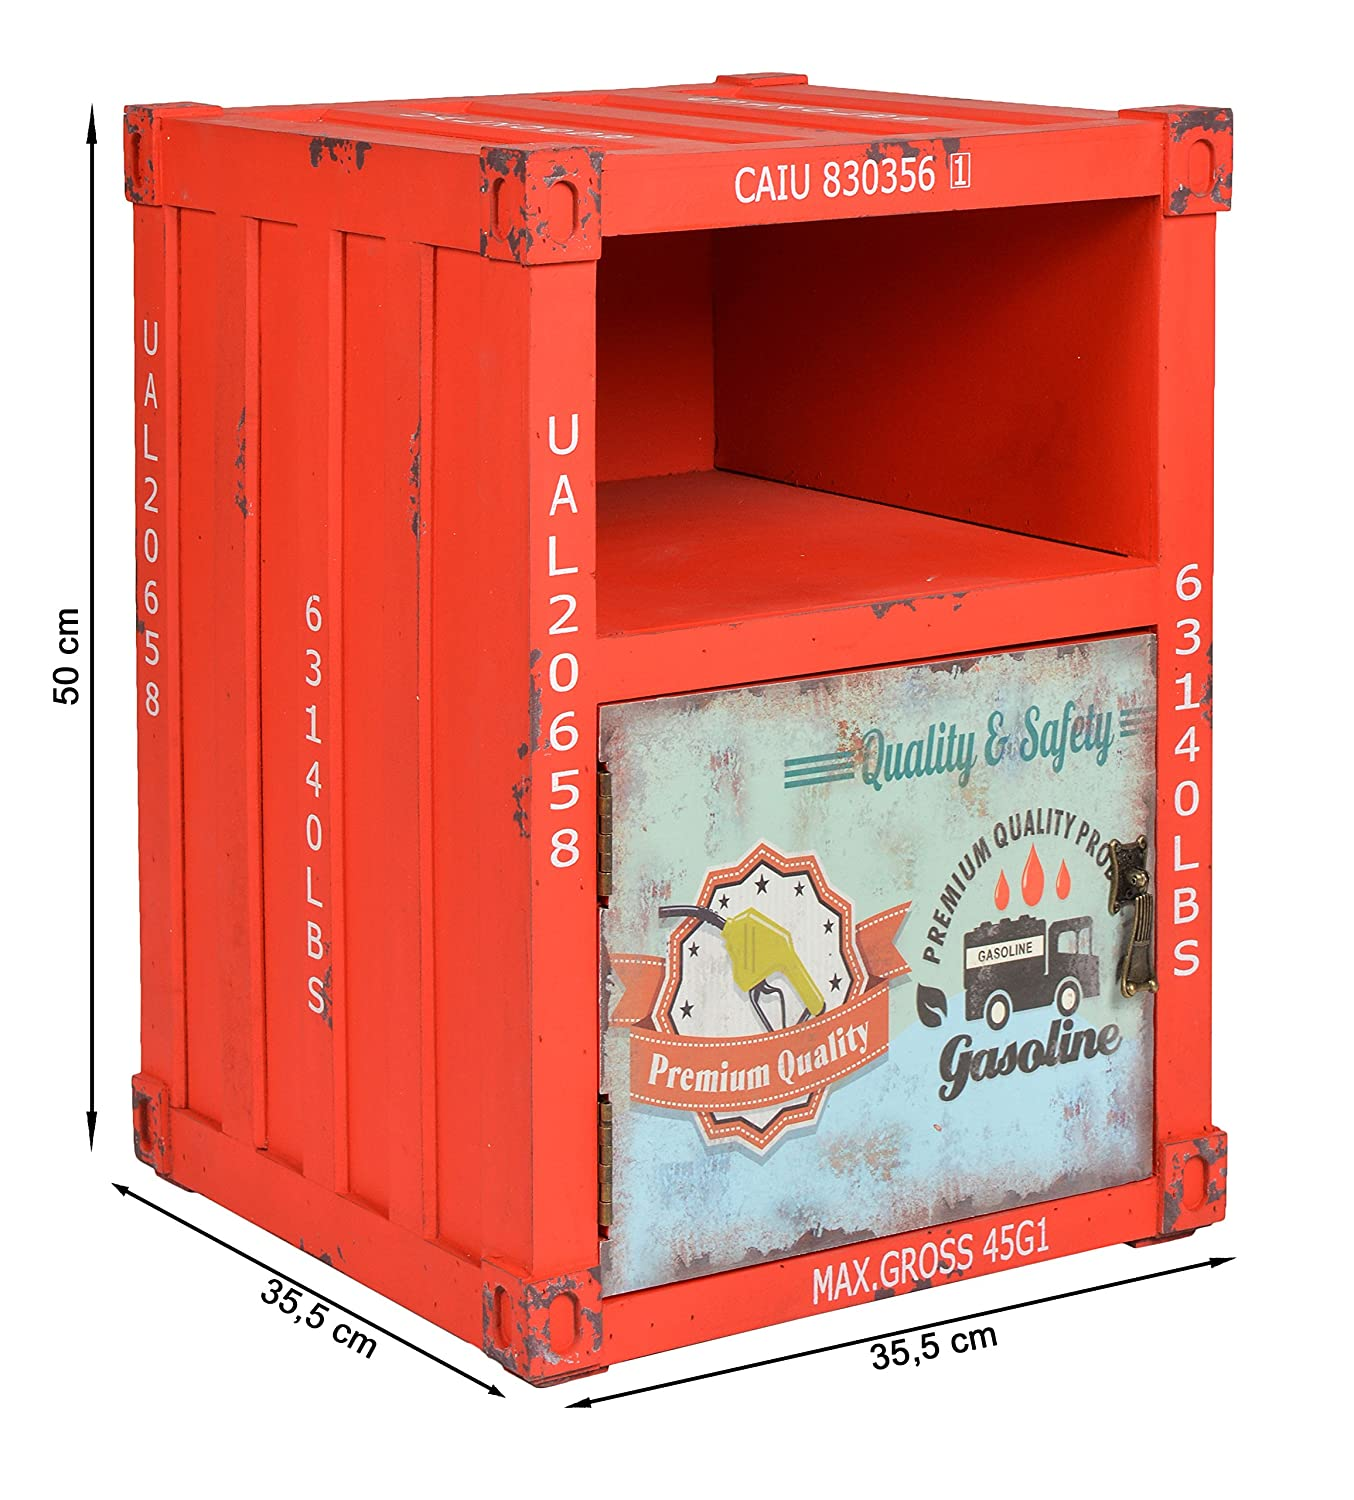 Ts Ideen Red Chest With Shelf And Door Cabinet Cupboard Storage  # Meuble Container